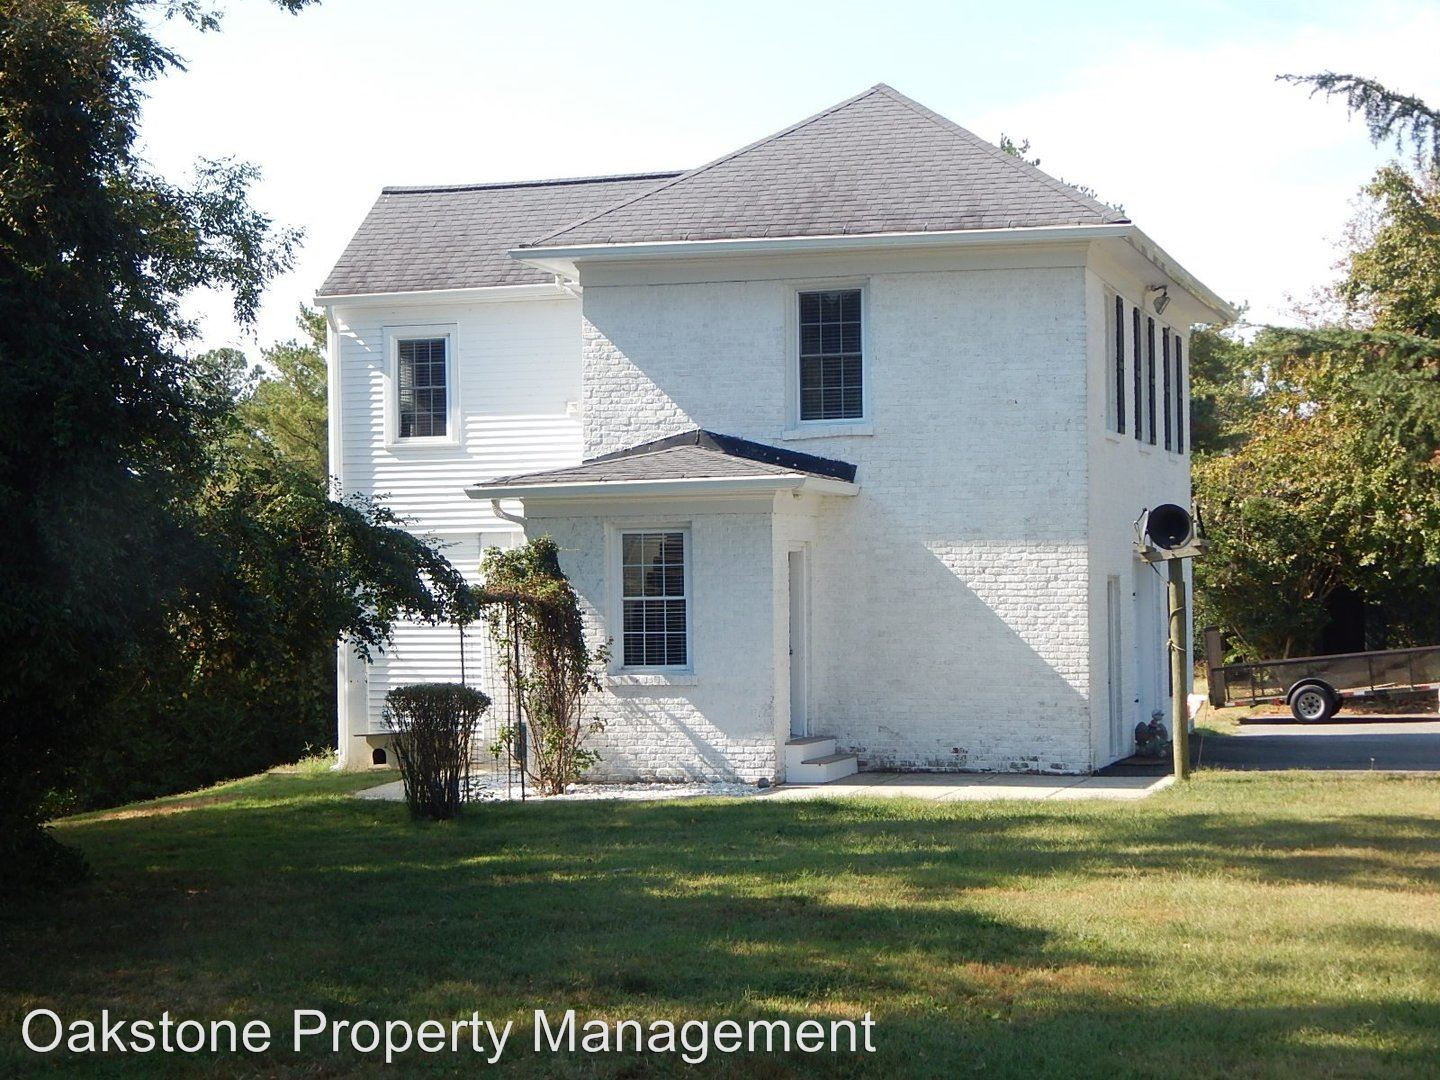 653 N. Church Ln., Tappahannock, VA - $975